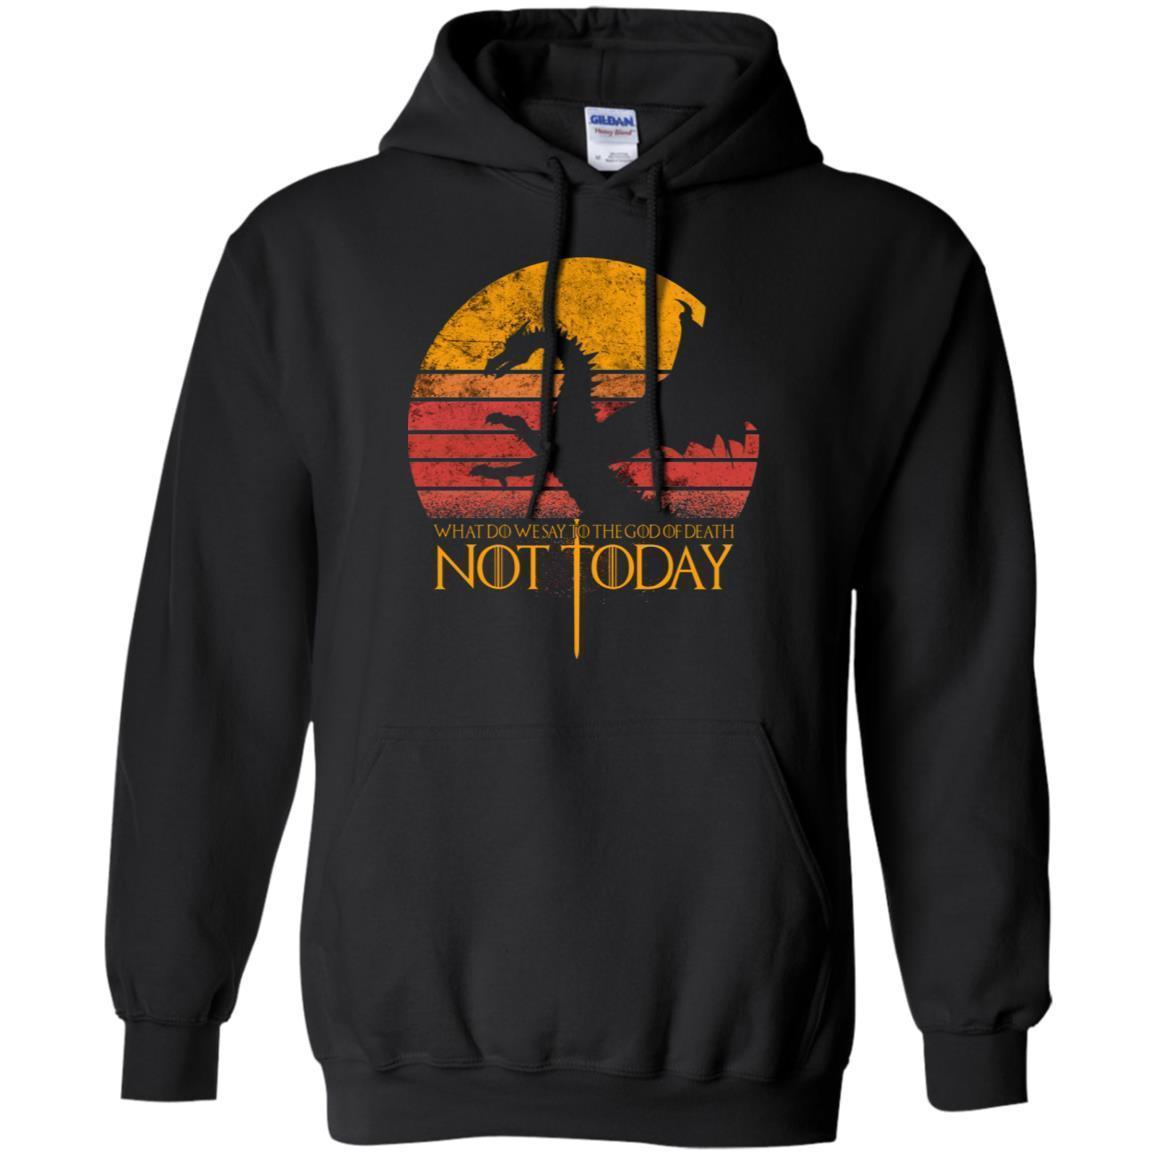 Vintage Not Today Dragon T-shirt What Do We Say To The God Of Death LT05